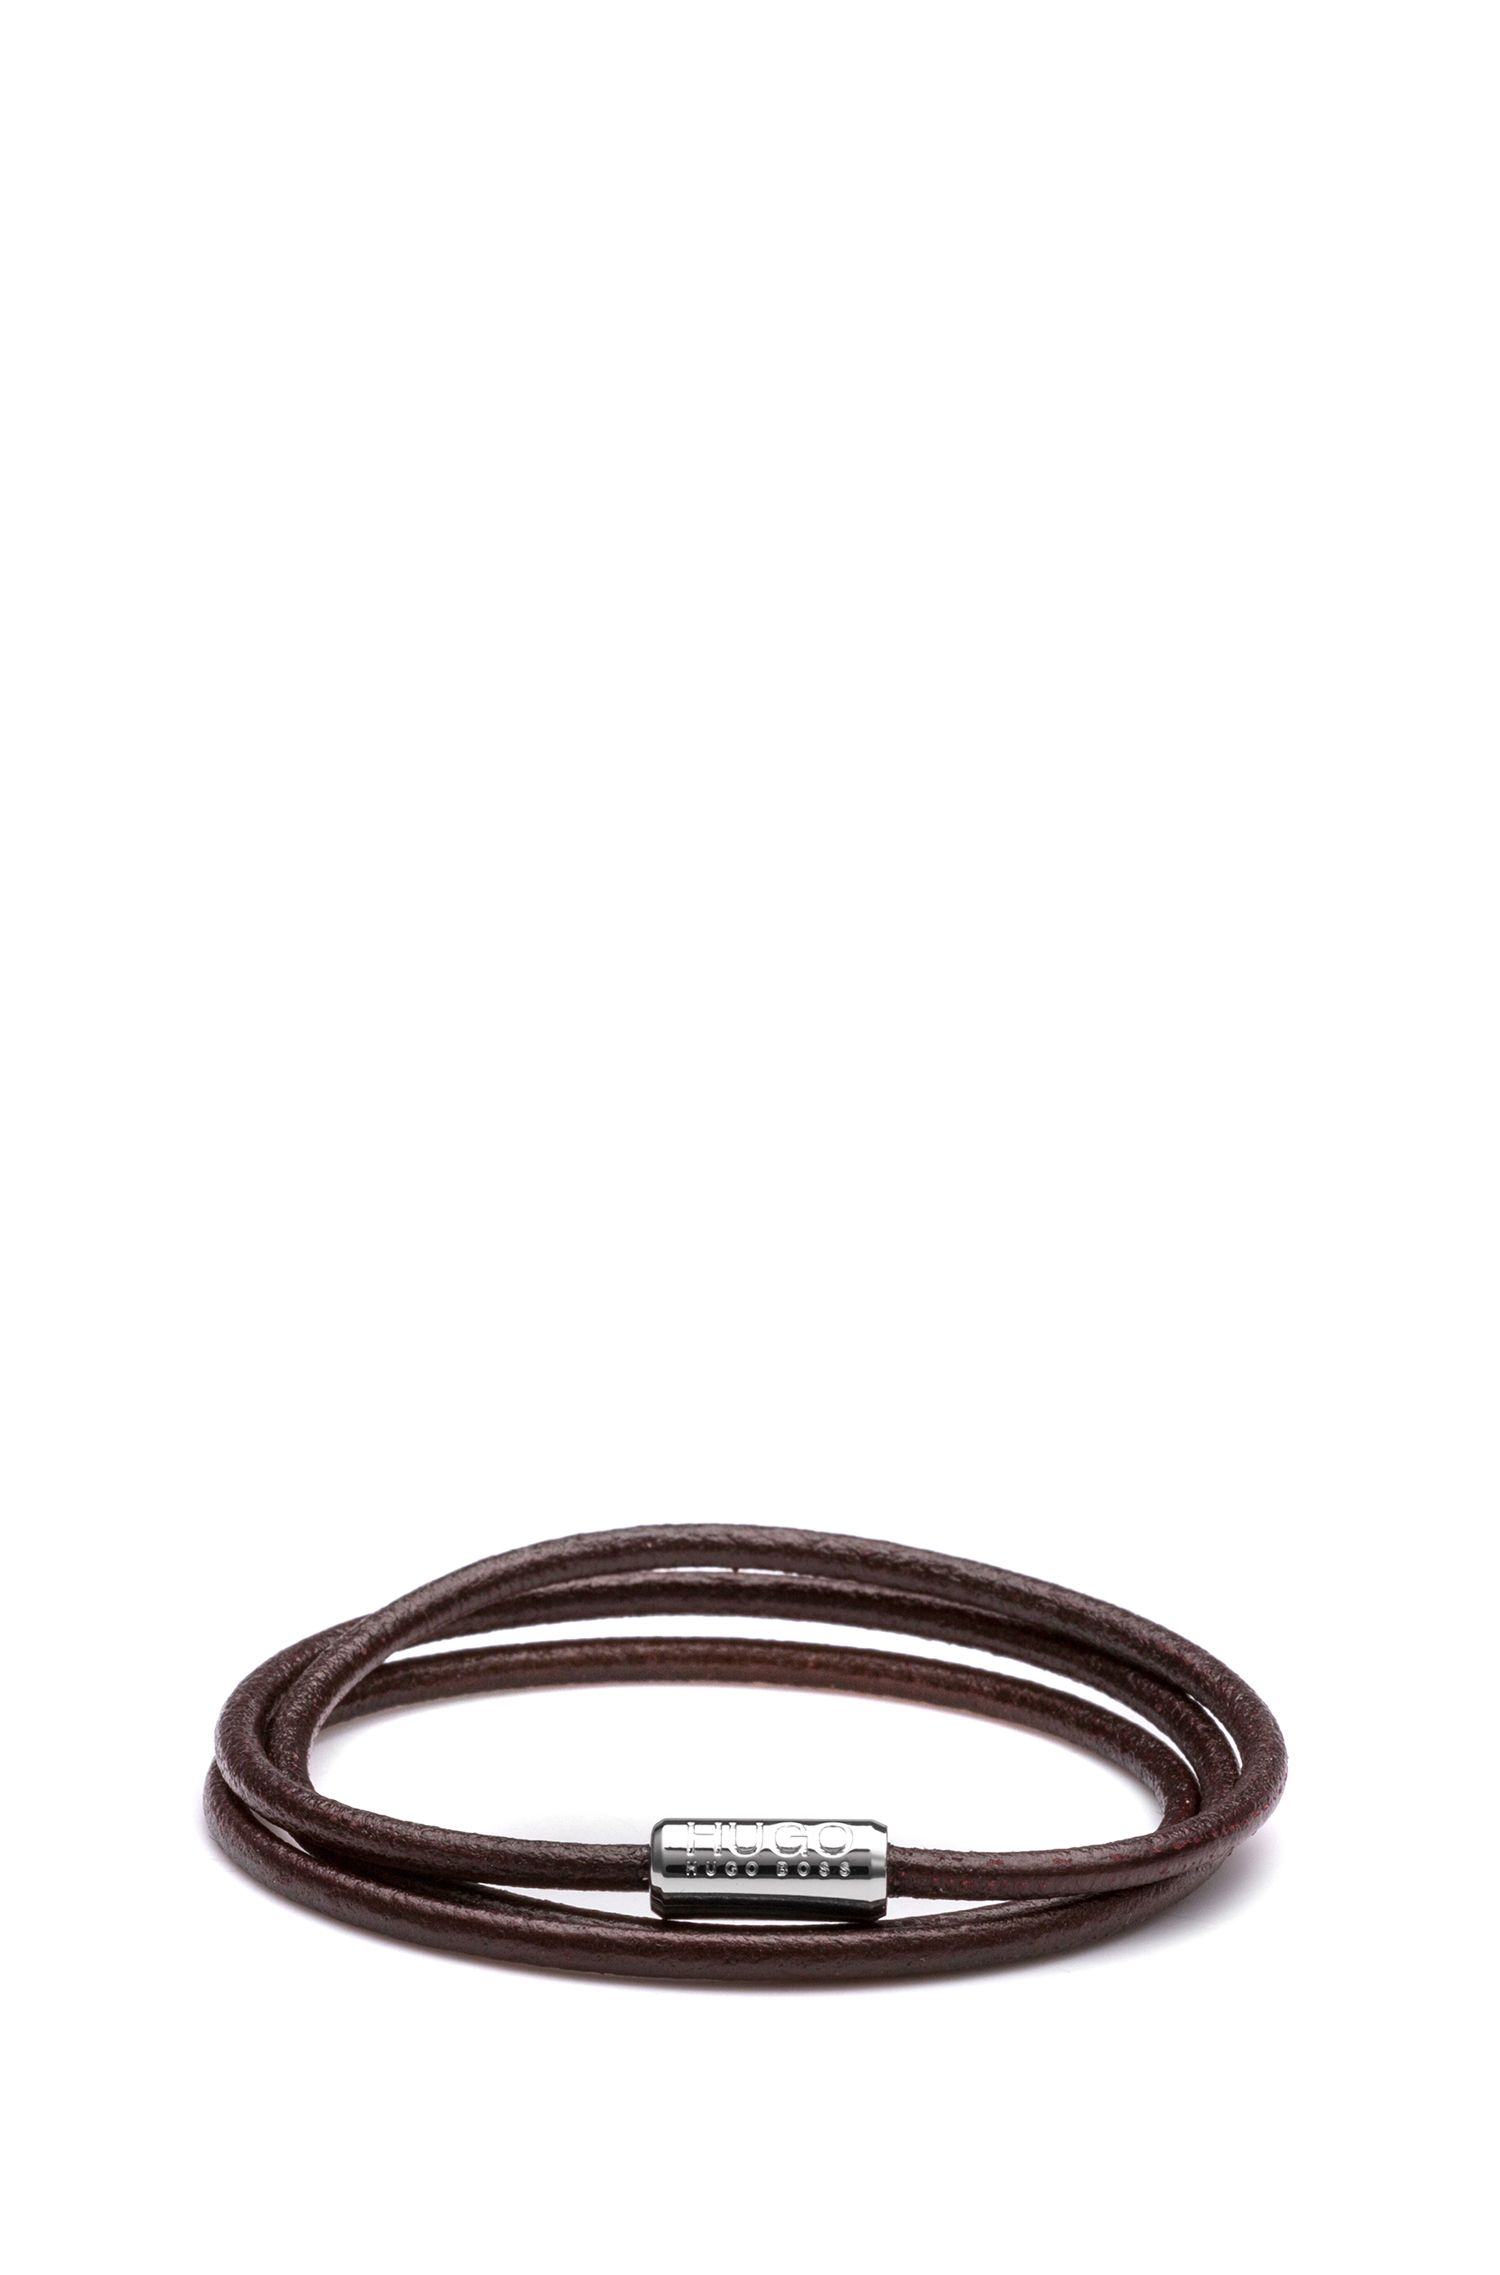 Italian-leather cord bracelet with magnetic closure